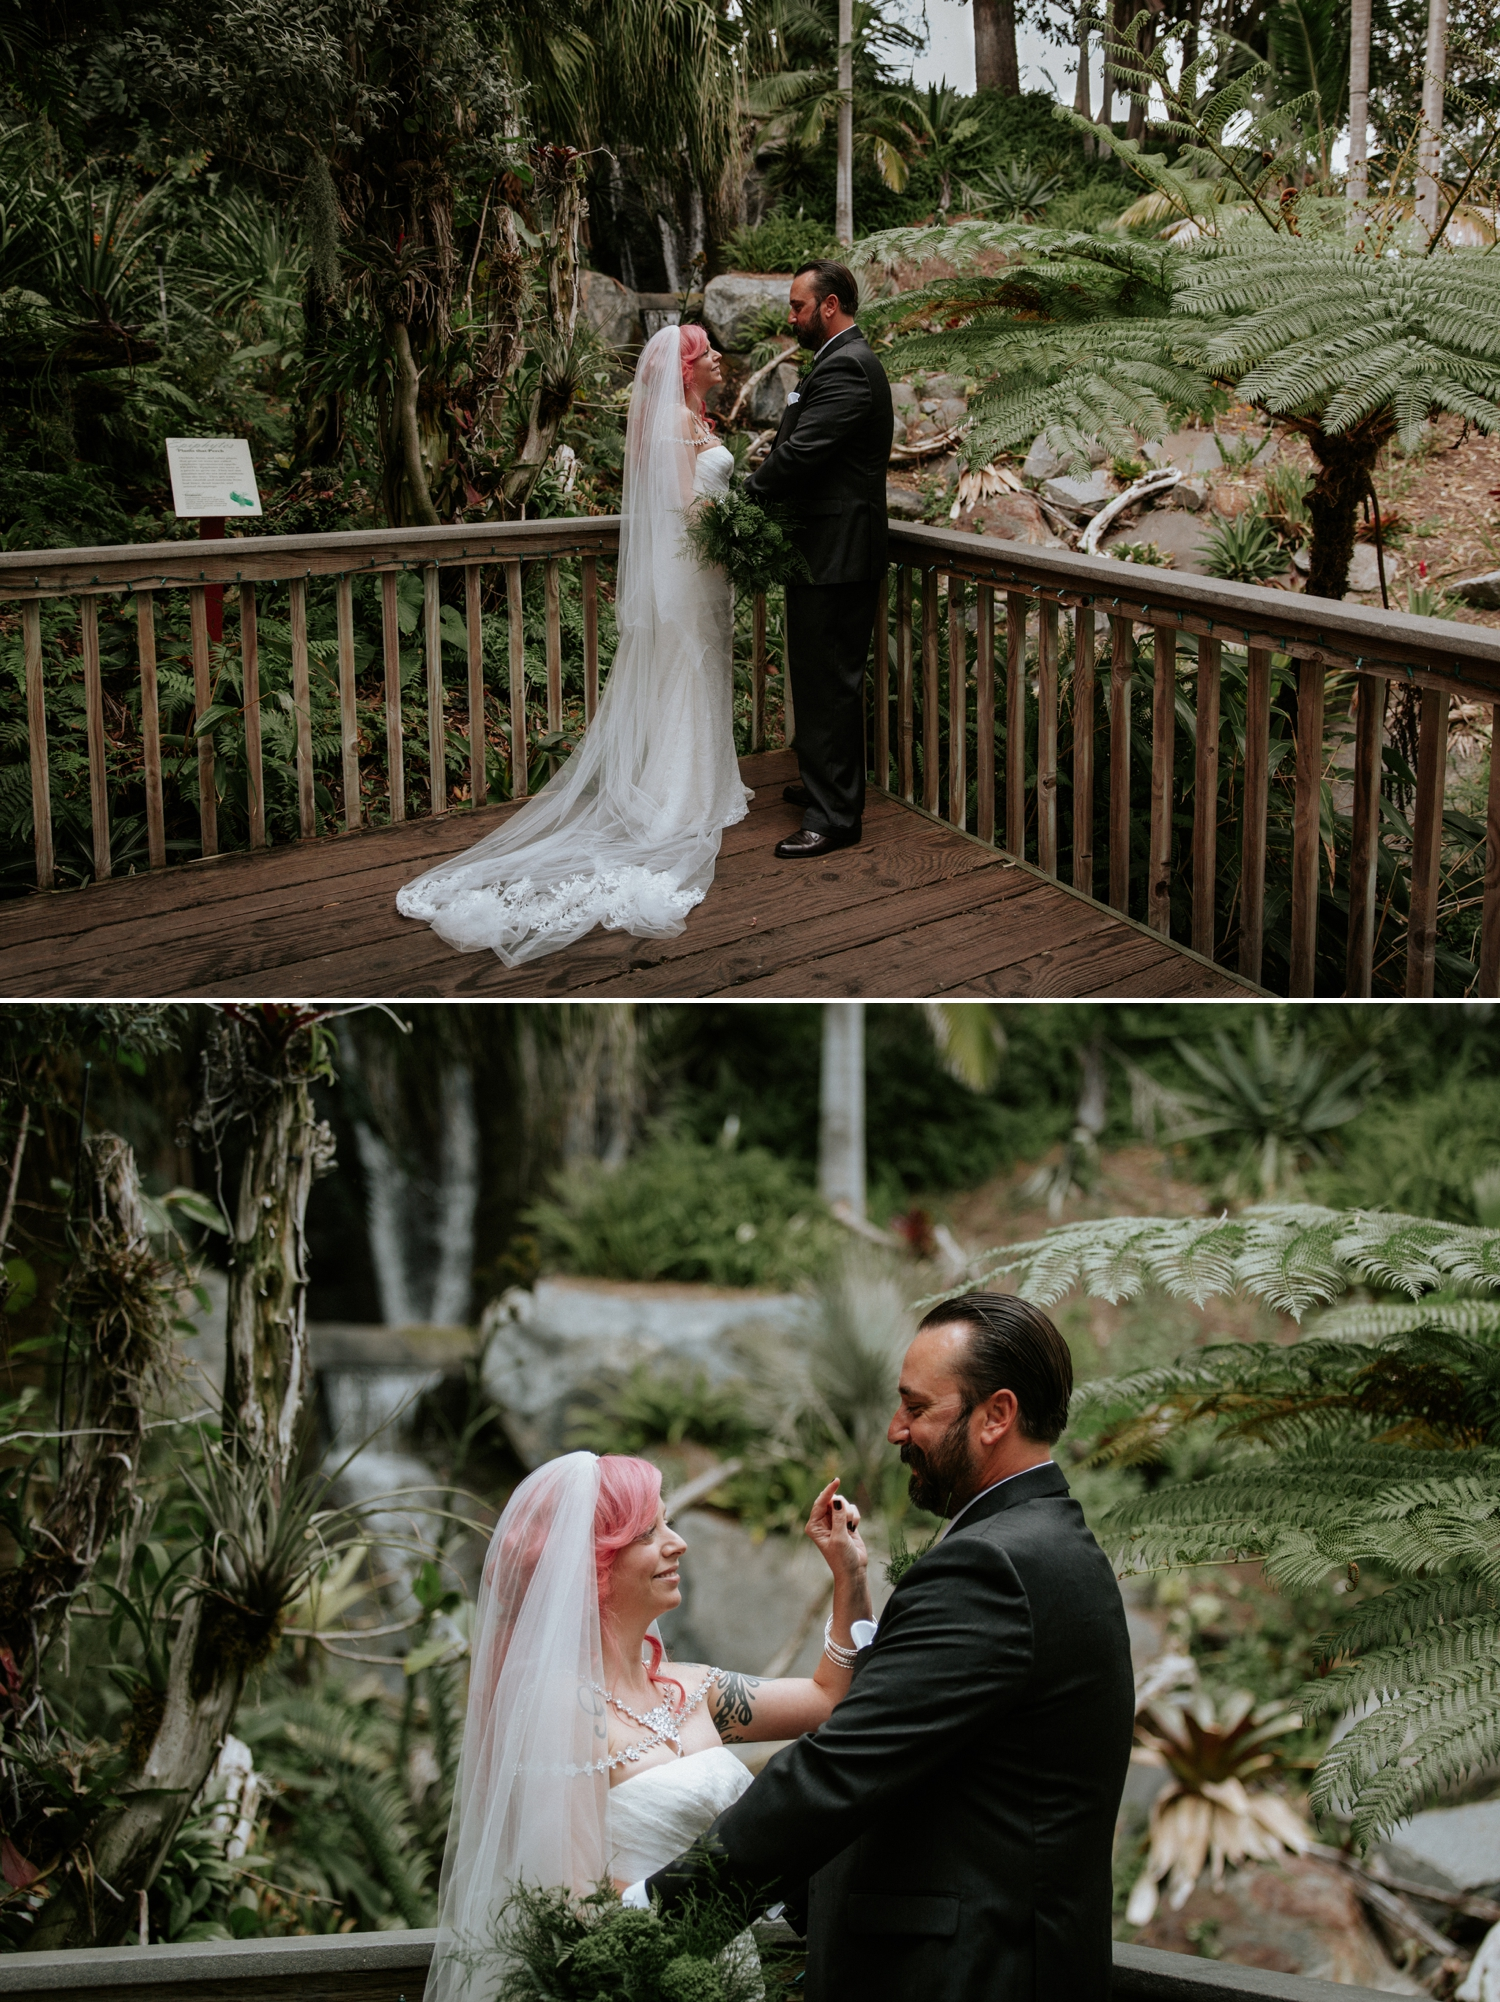 ... Intimate Wedding At San Diego Botanic Garden By Paige Nelson ...